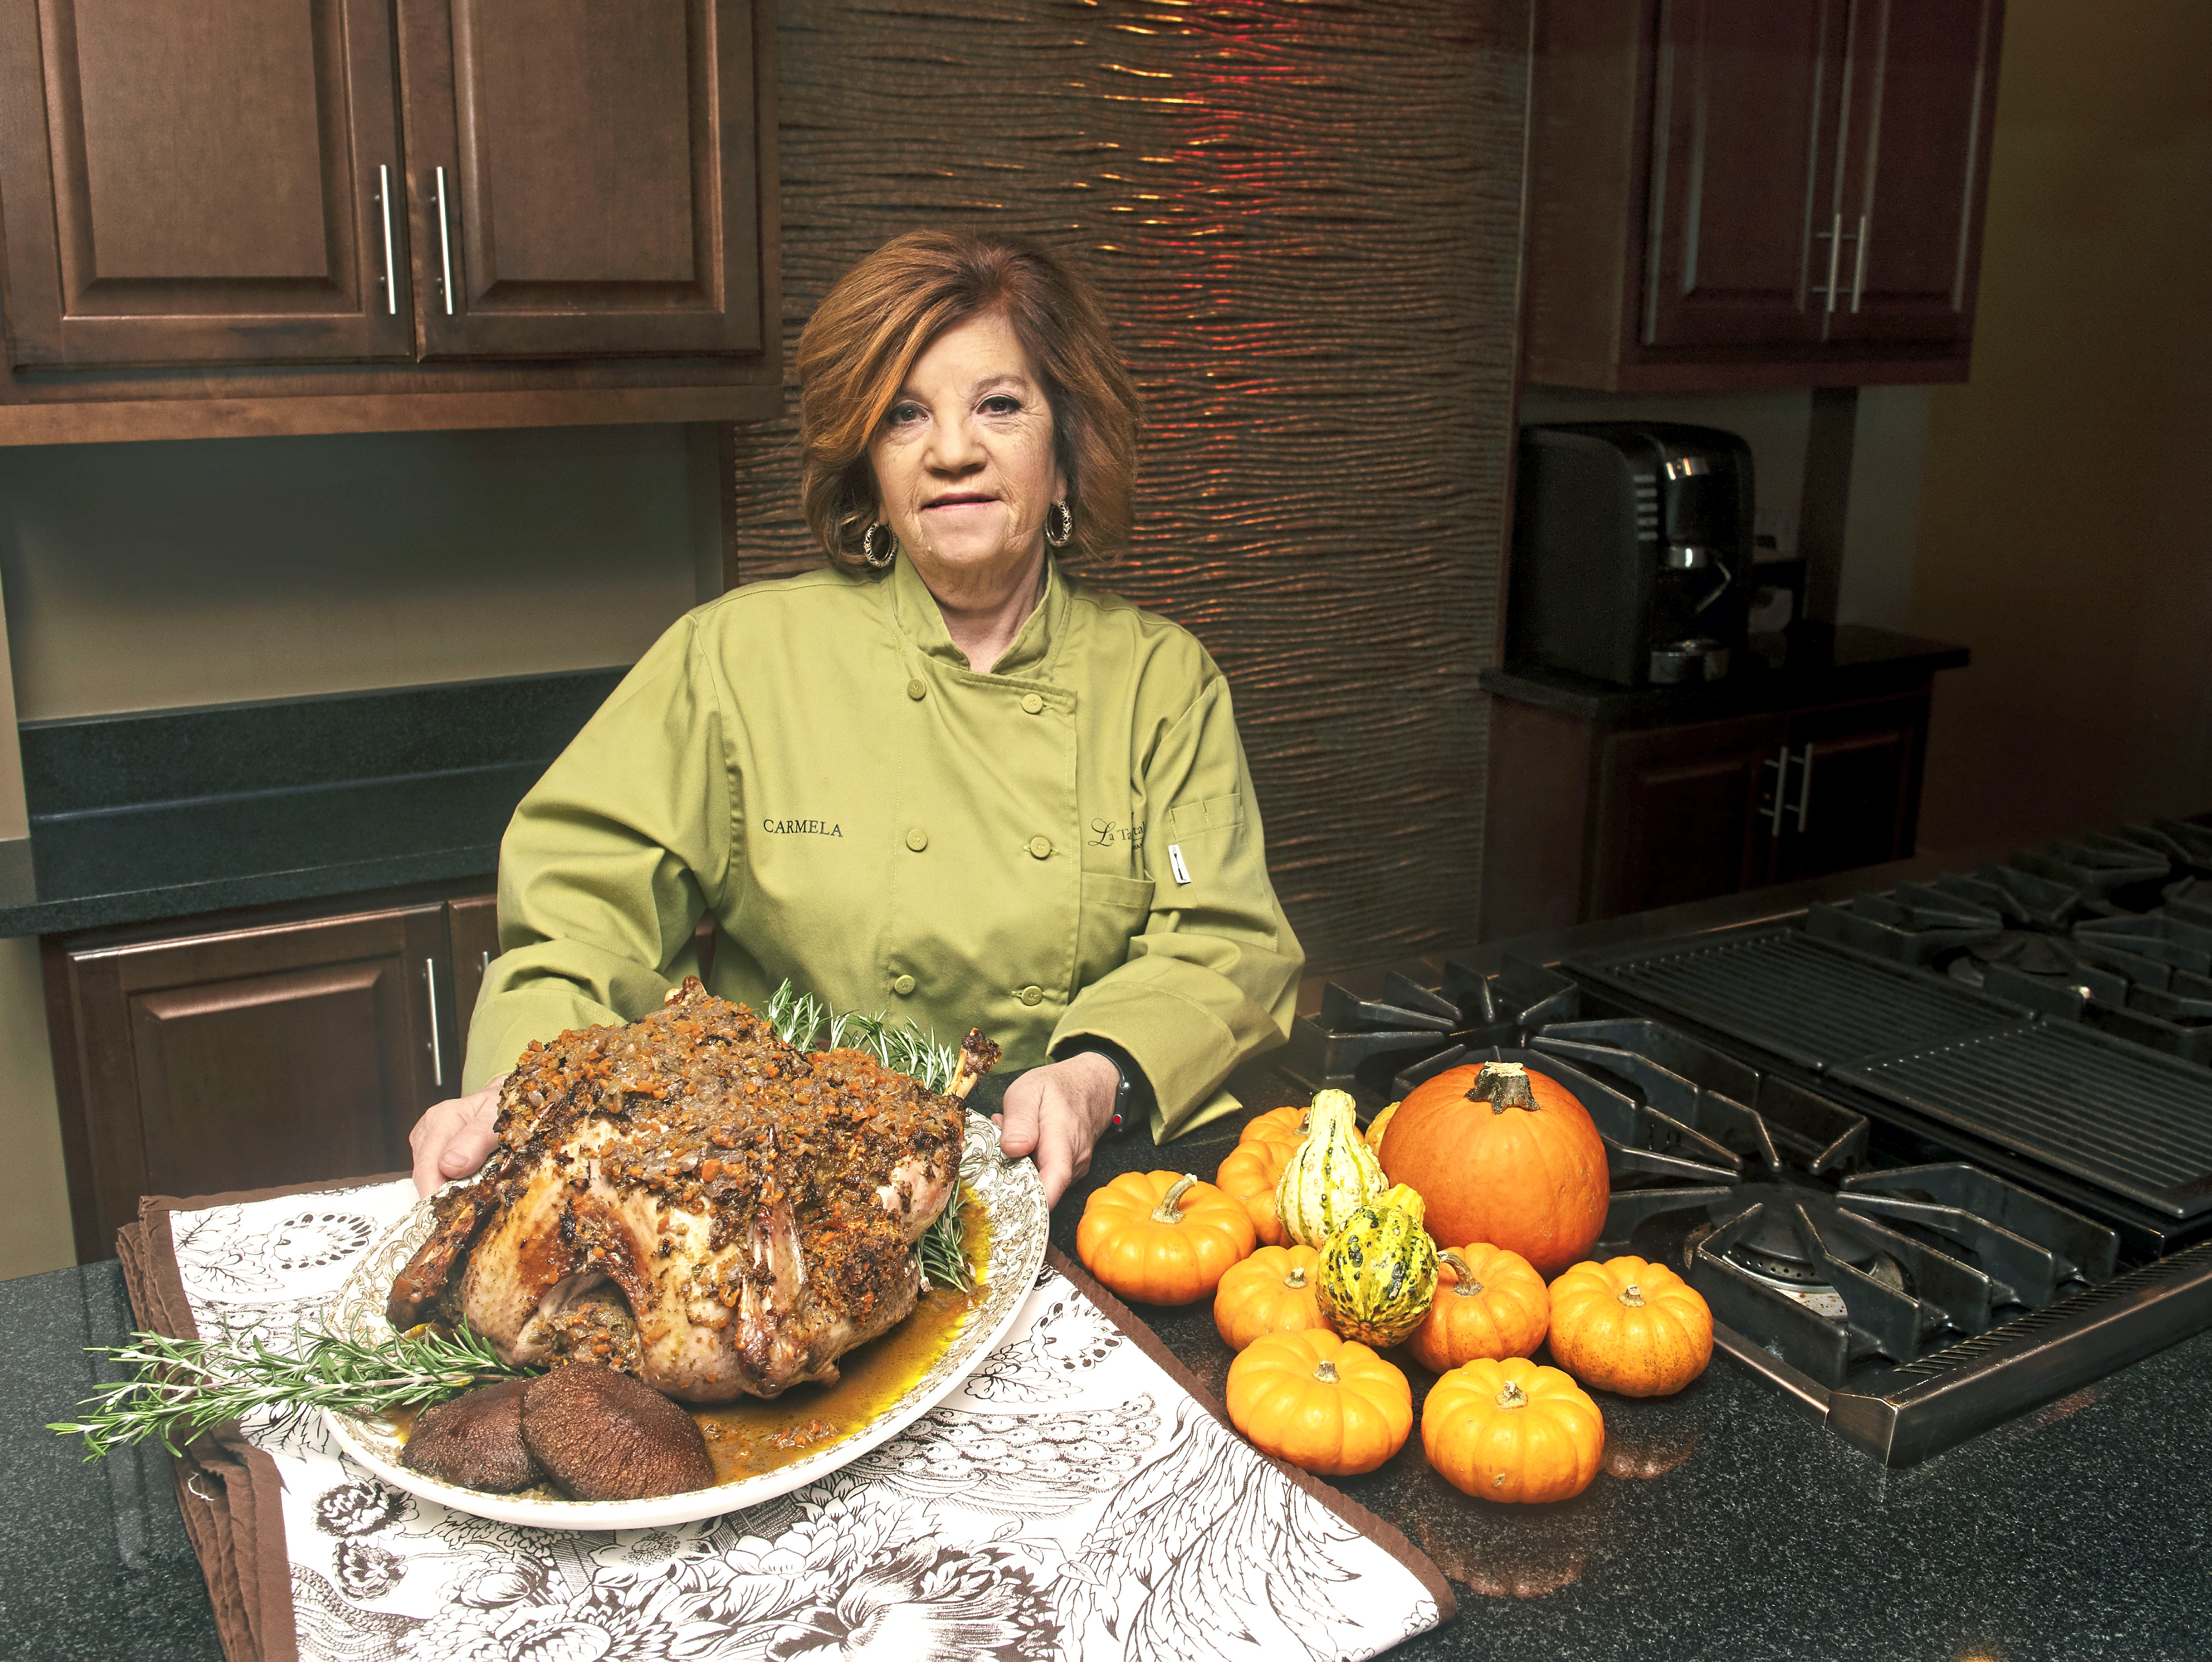 Melting pot of thanks: 5 Pittsburgh chefs infuse their global culture at the Thanksgiving table